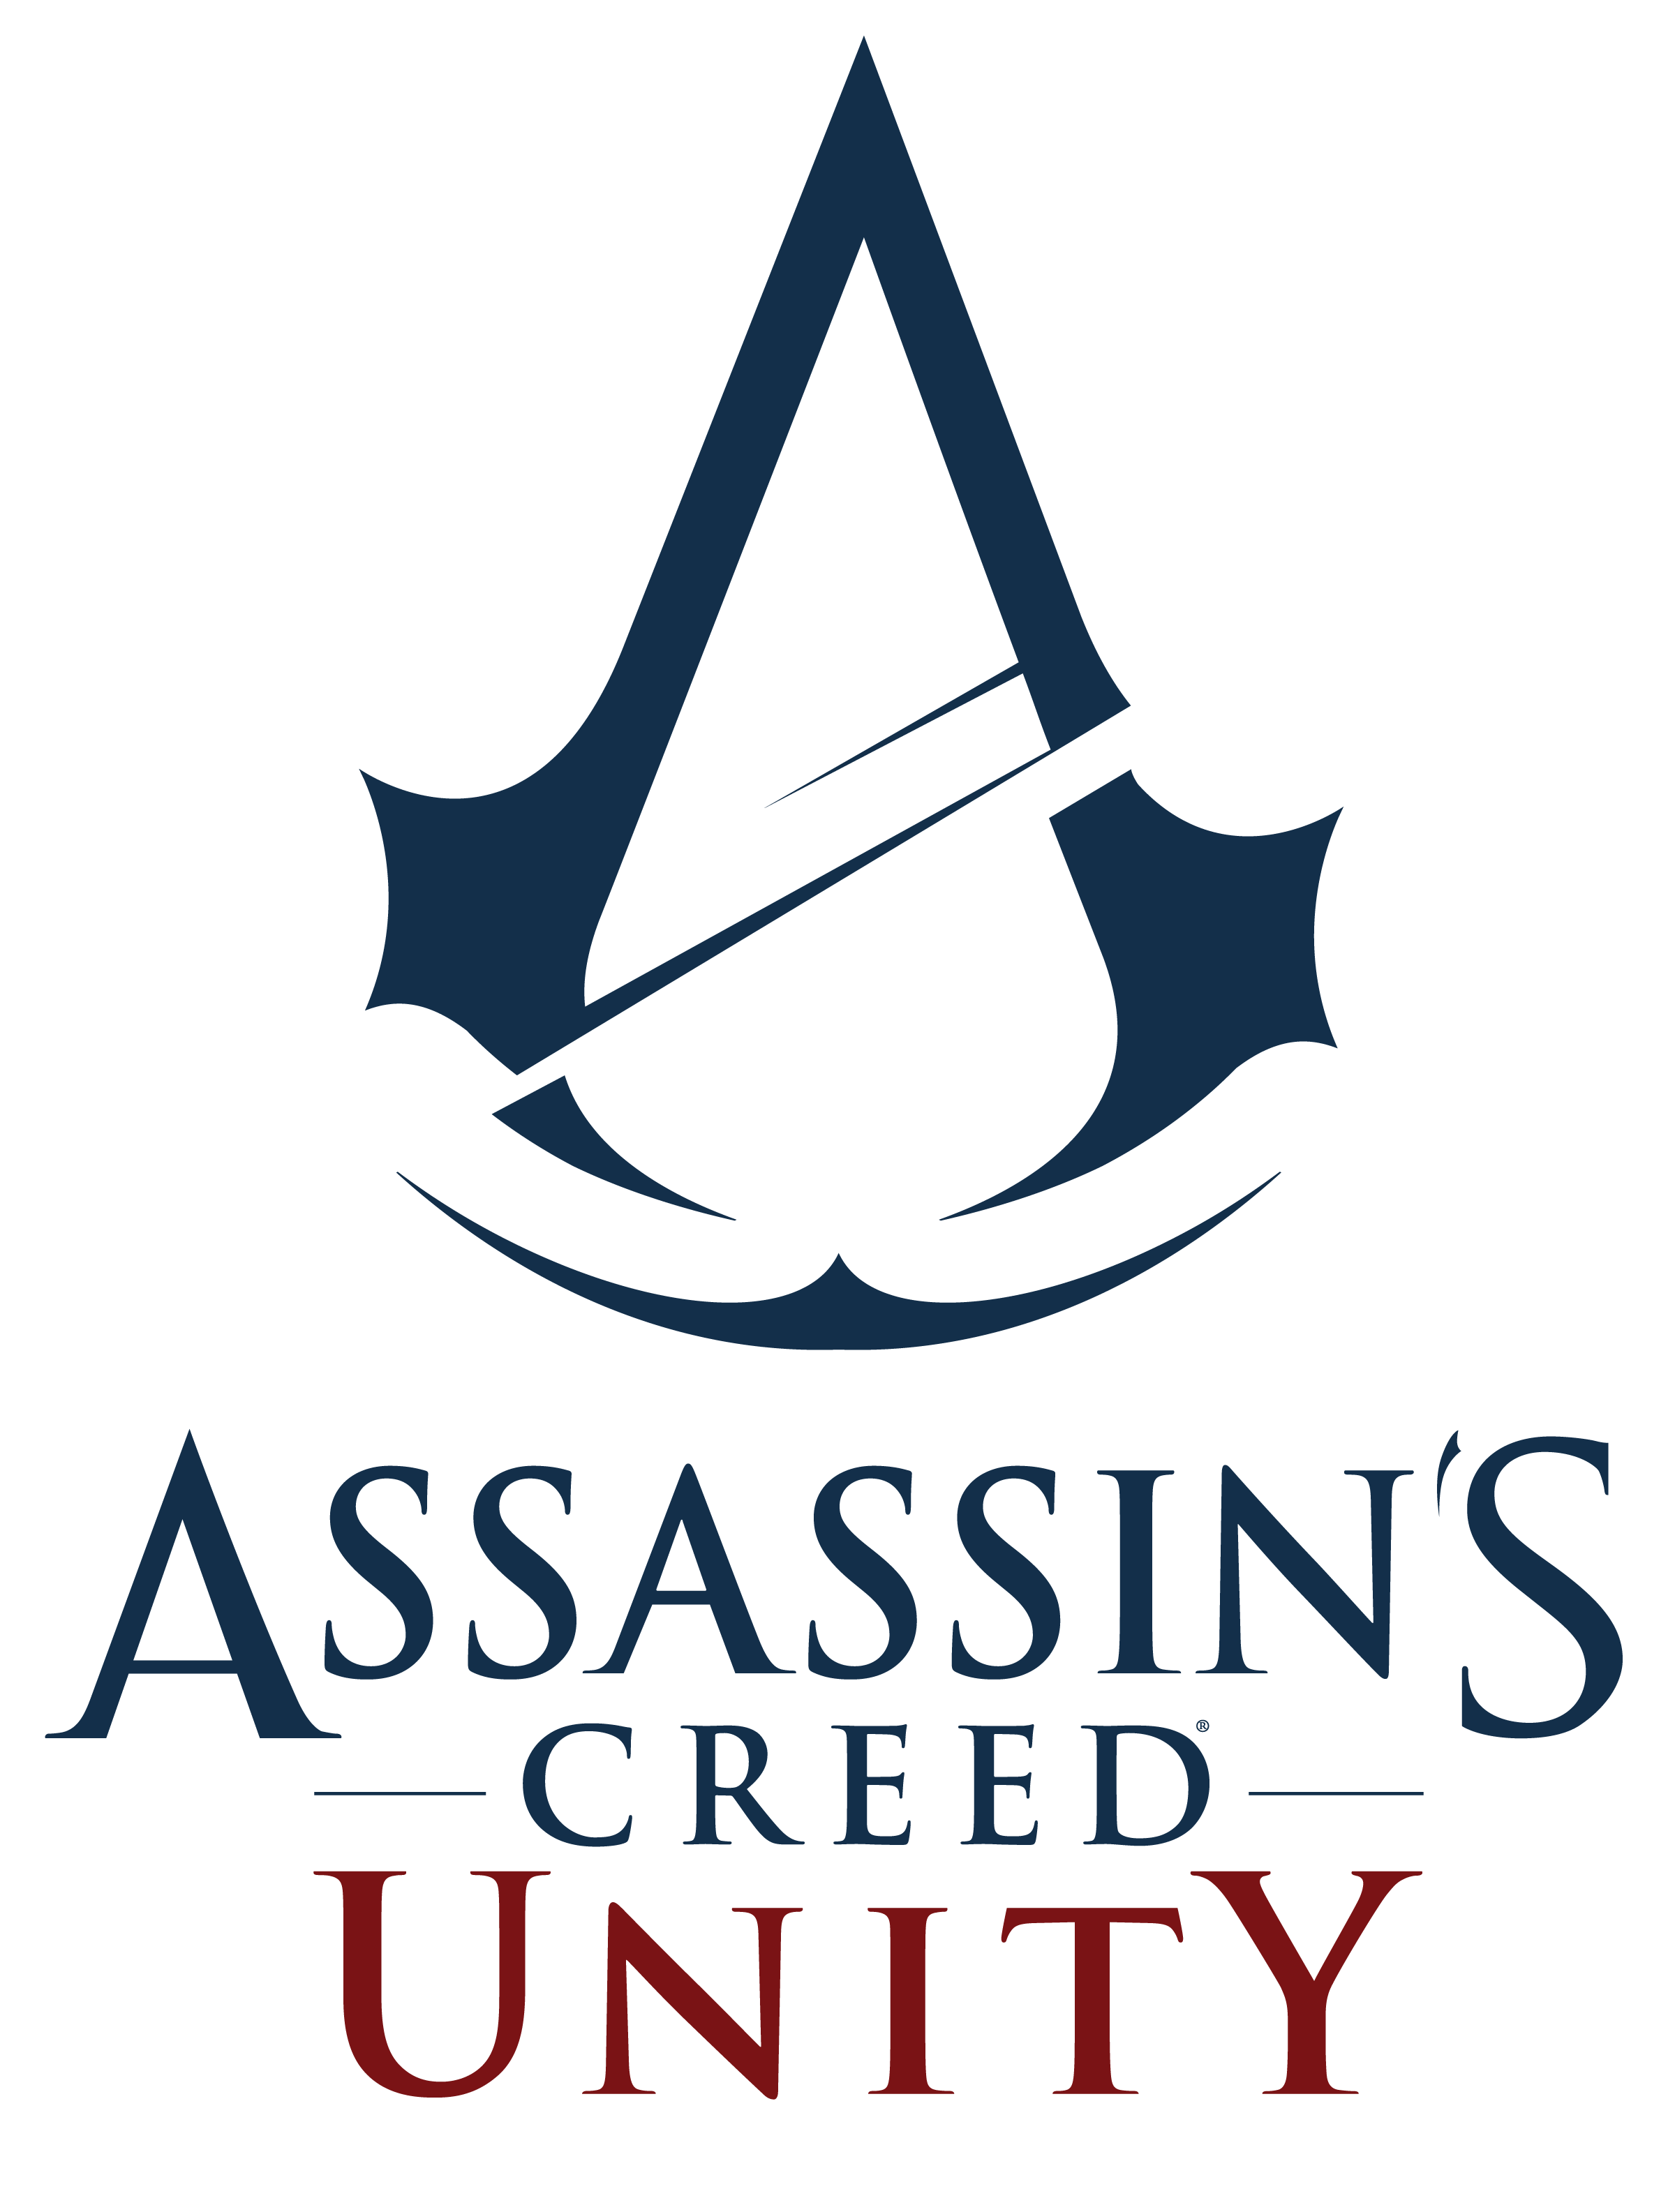 Pin By Franky4fingers On Assassins United Assassins Creed Assassins Creed Game Assassins Creed Unity